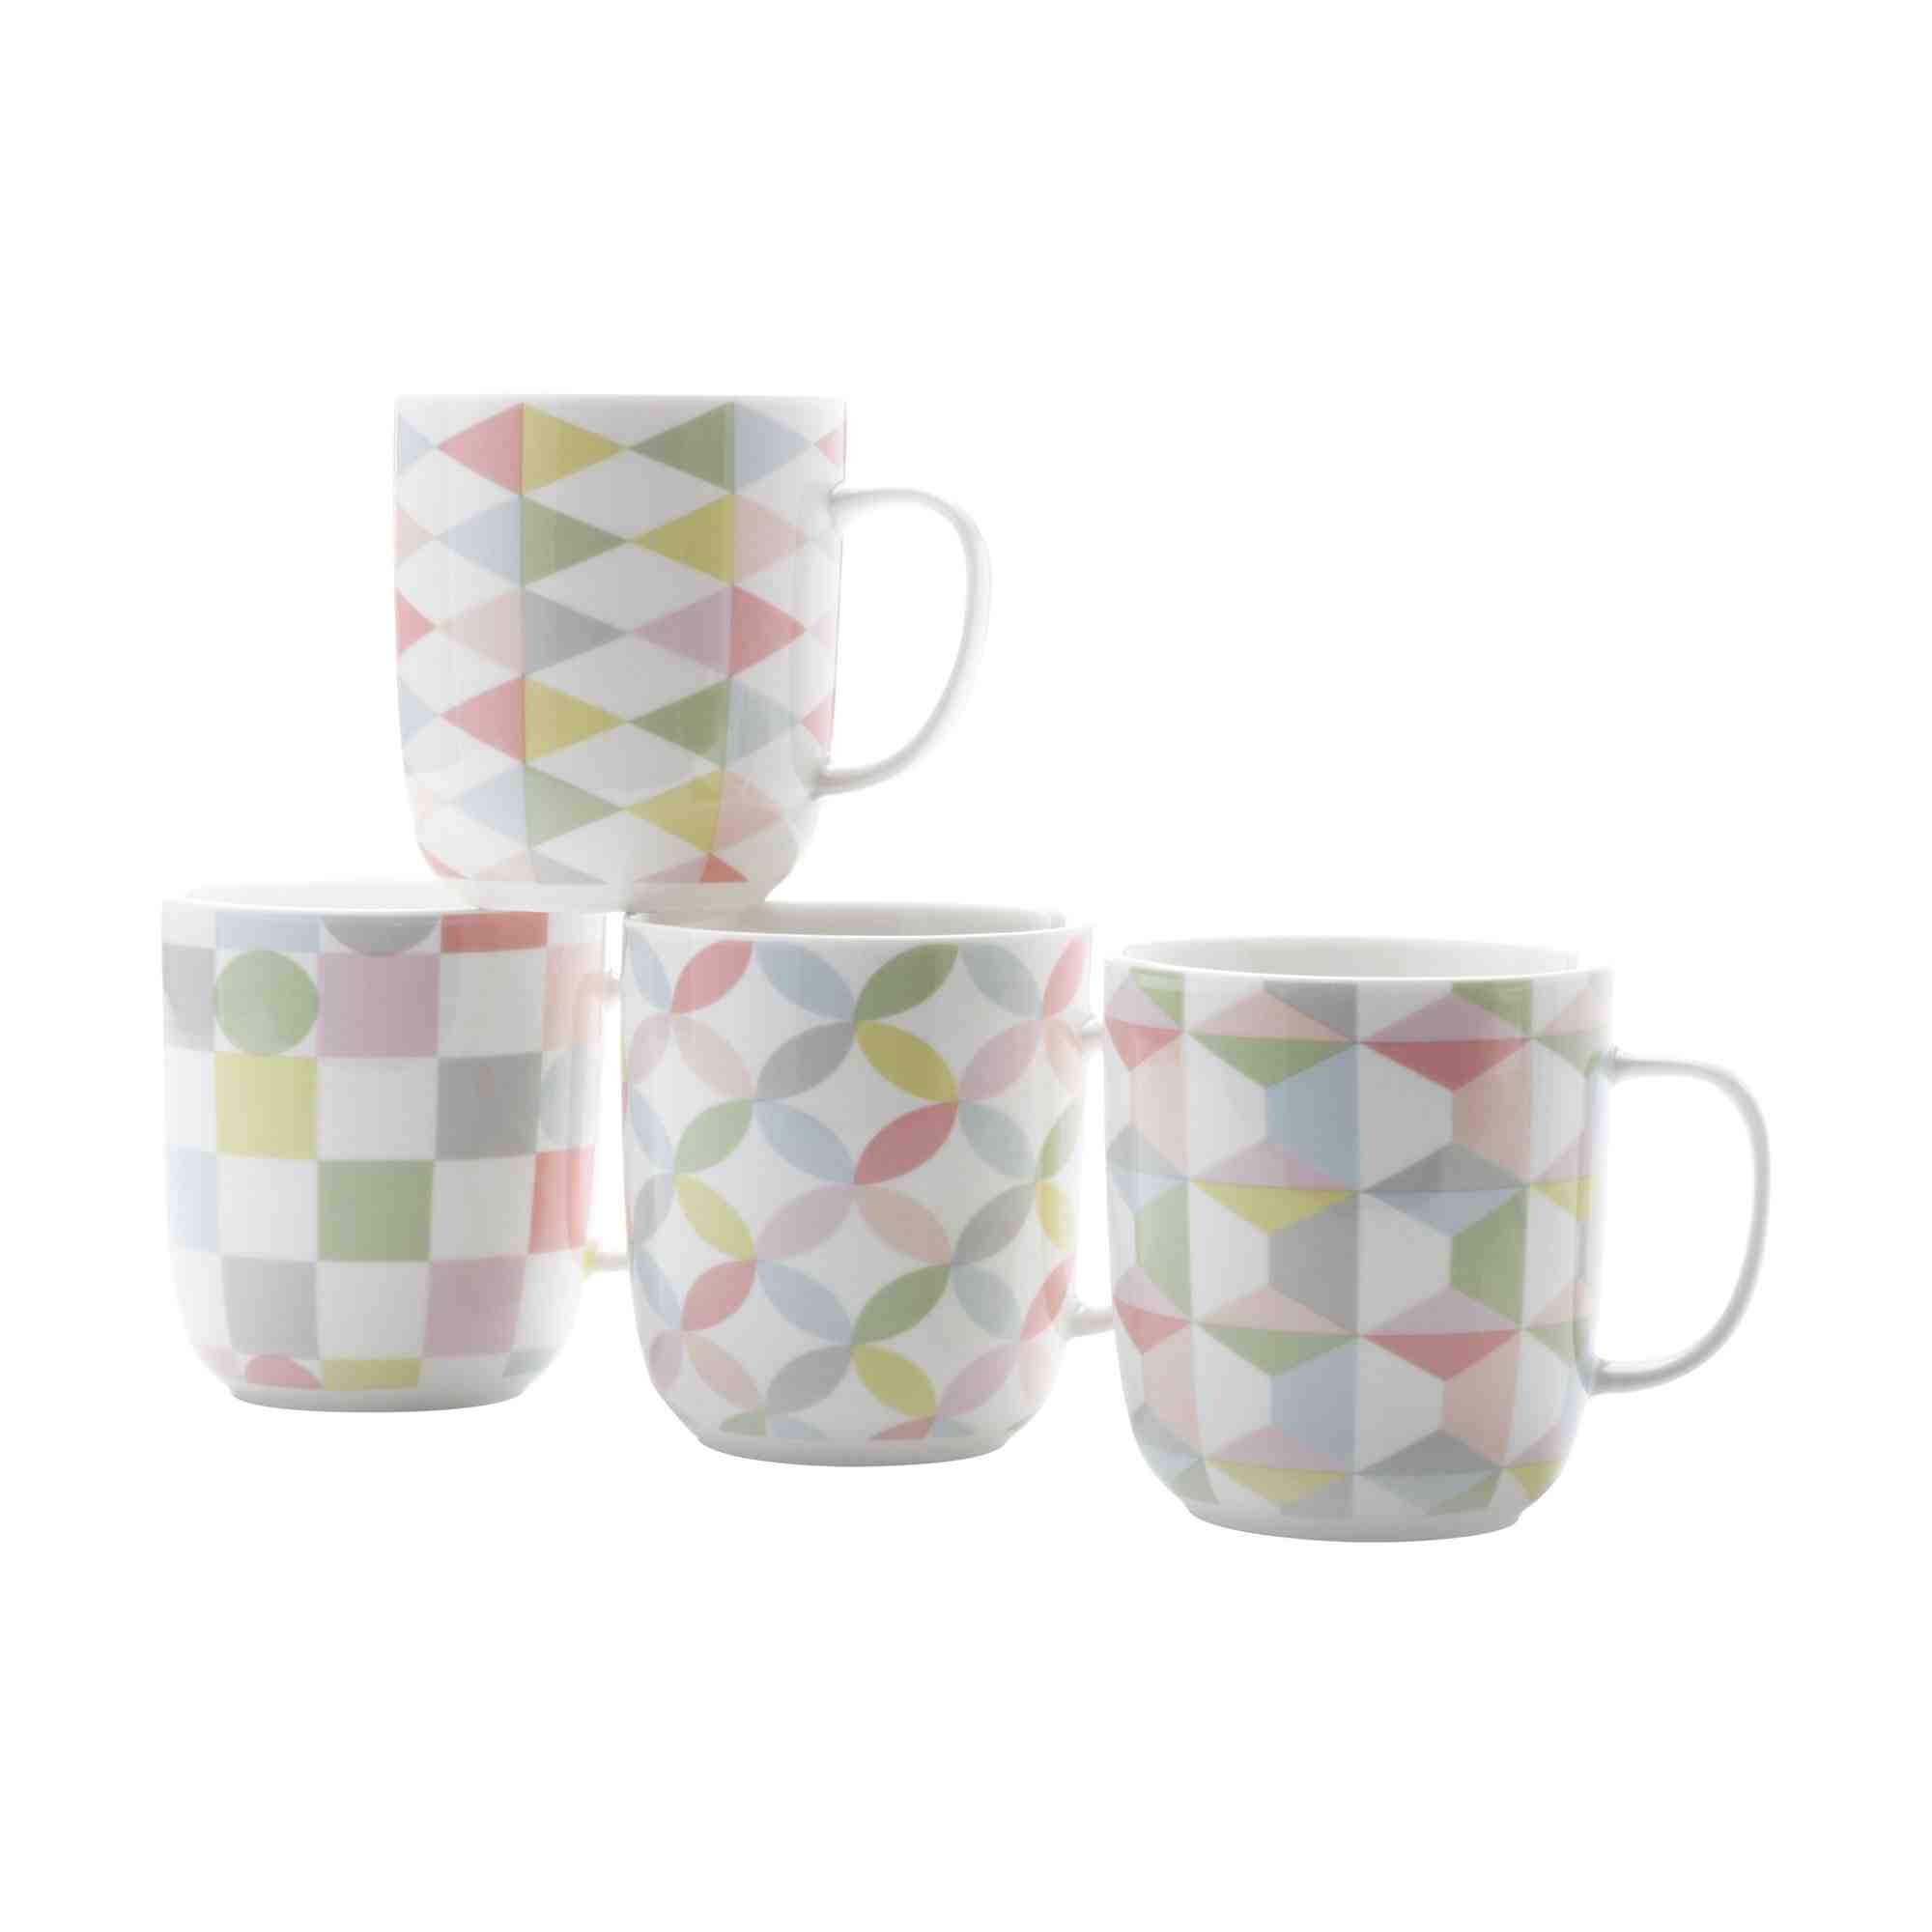 Maxwell & Williams Geoclectic Mug Set of 4